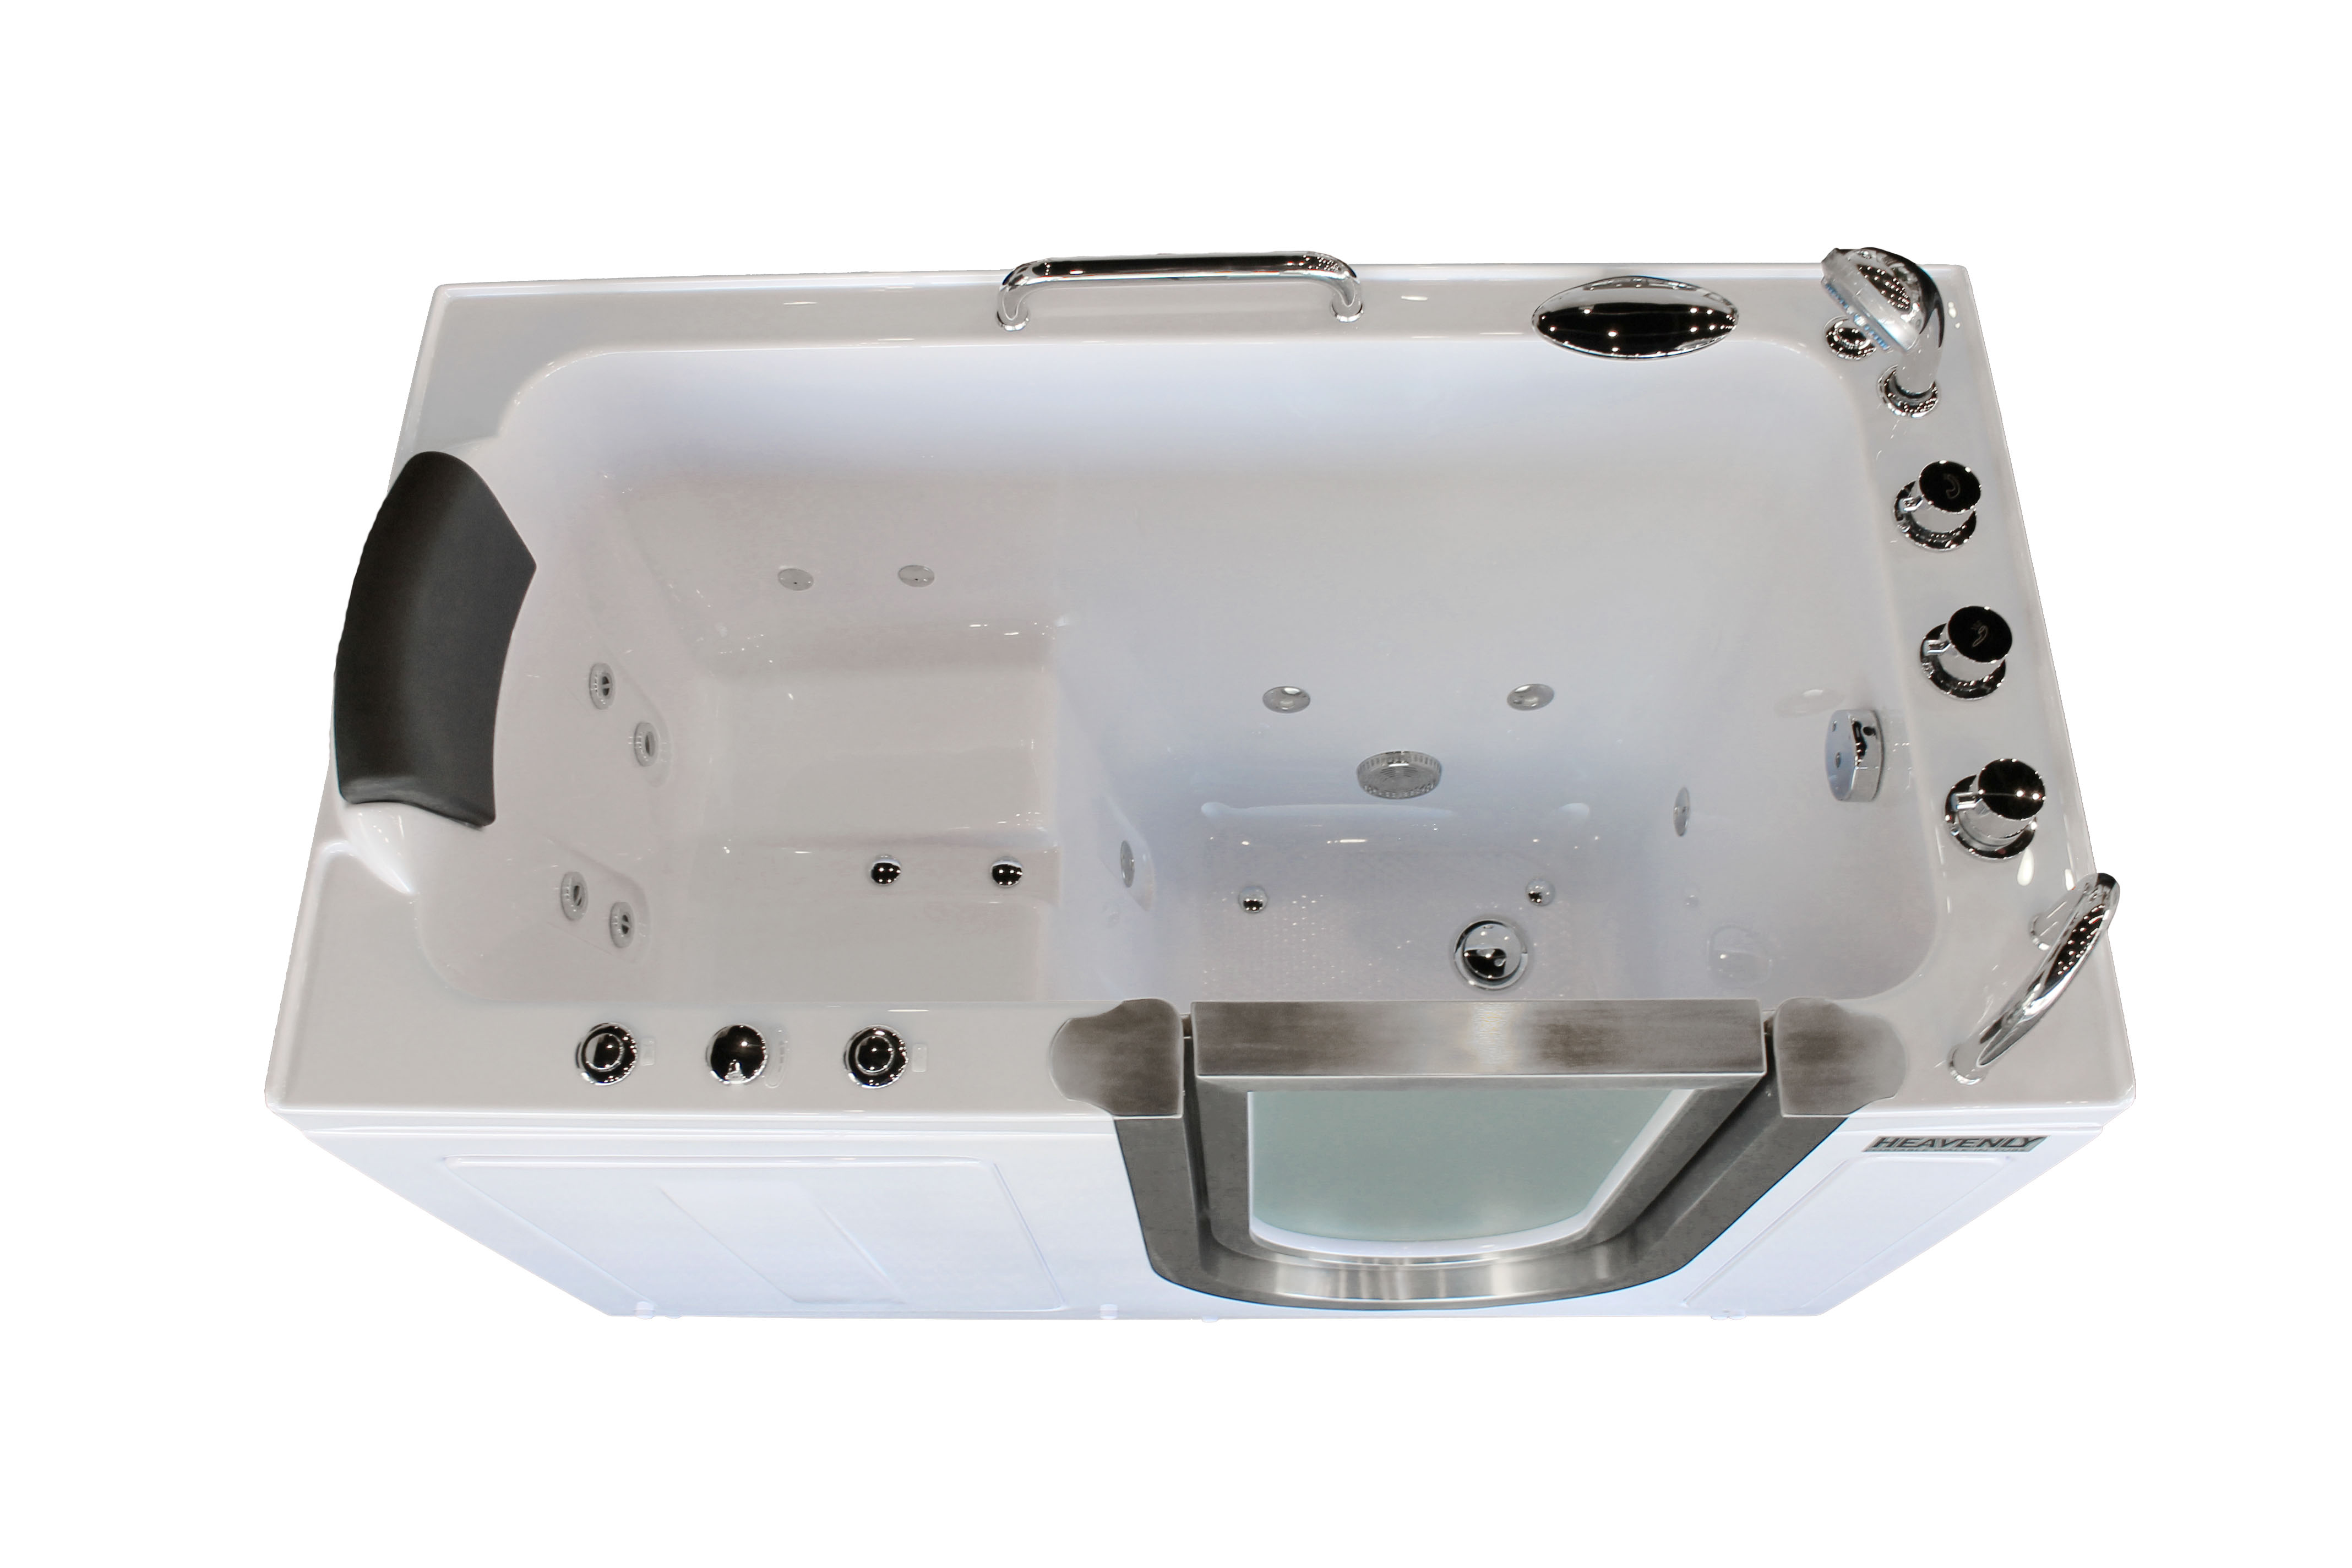 Deluxe Portable Hydrotherapy Walk-In Tub | Heavenly Walk In Tubs